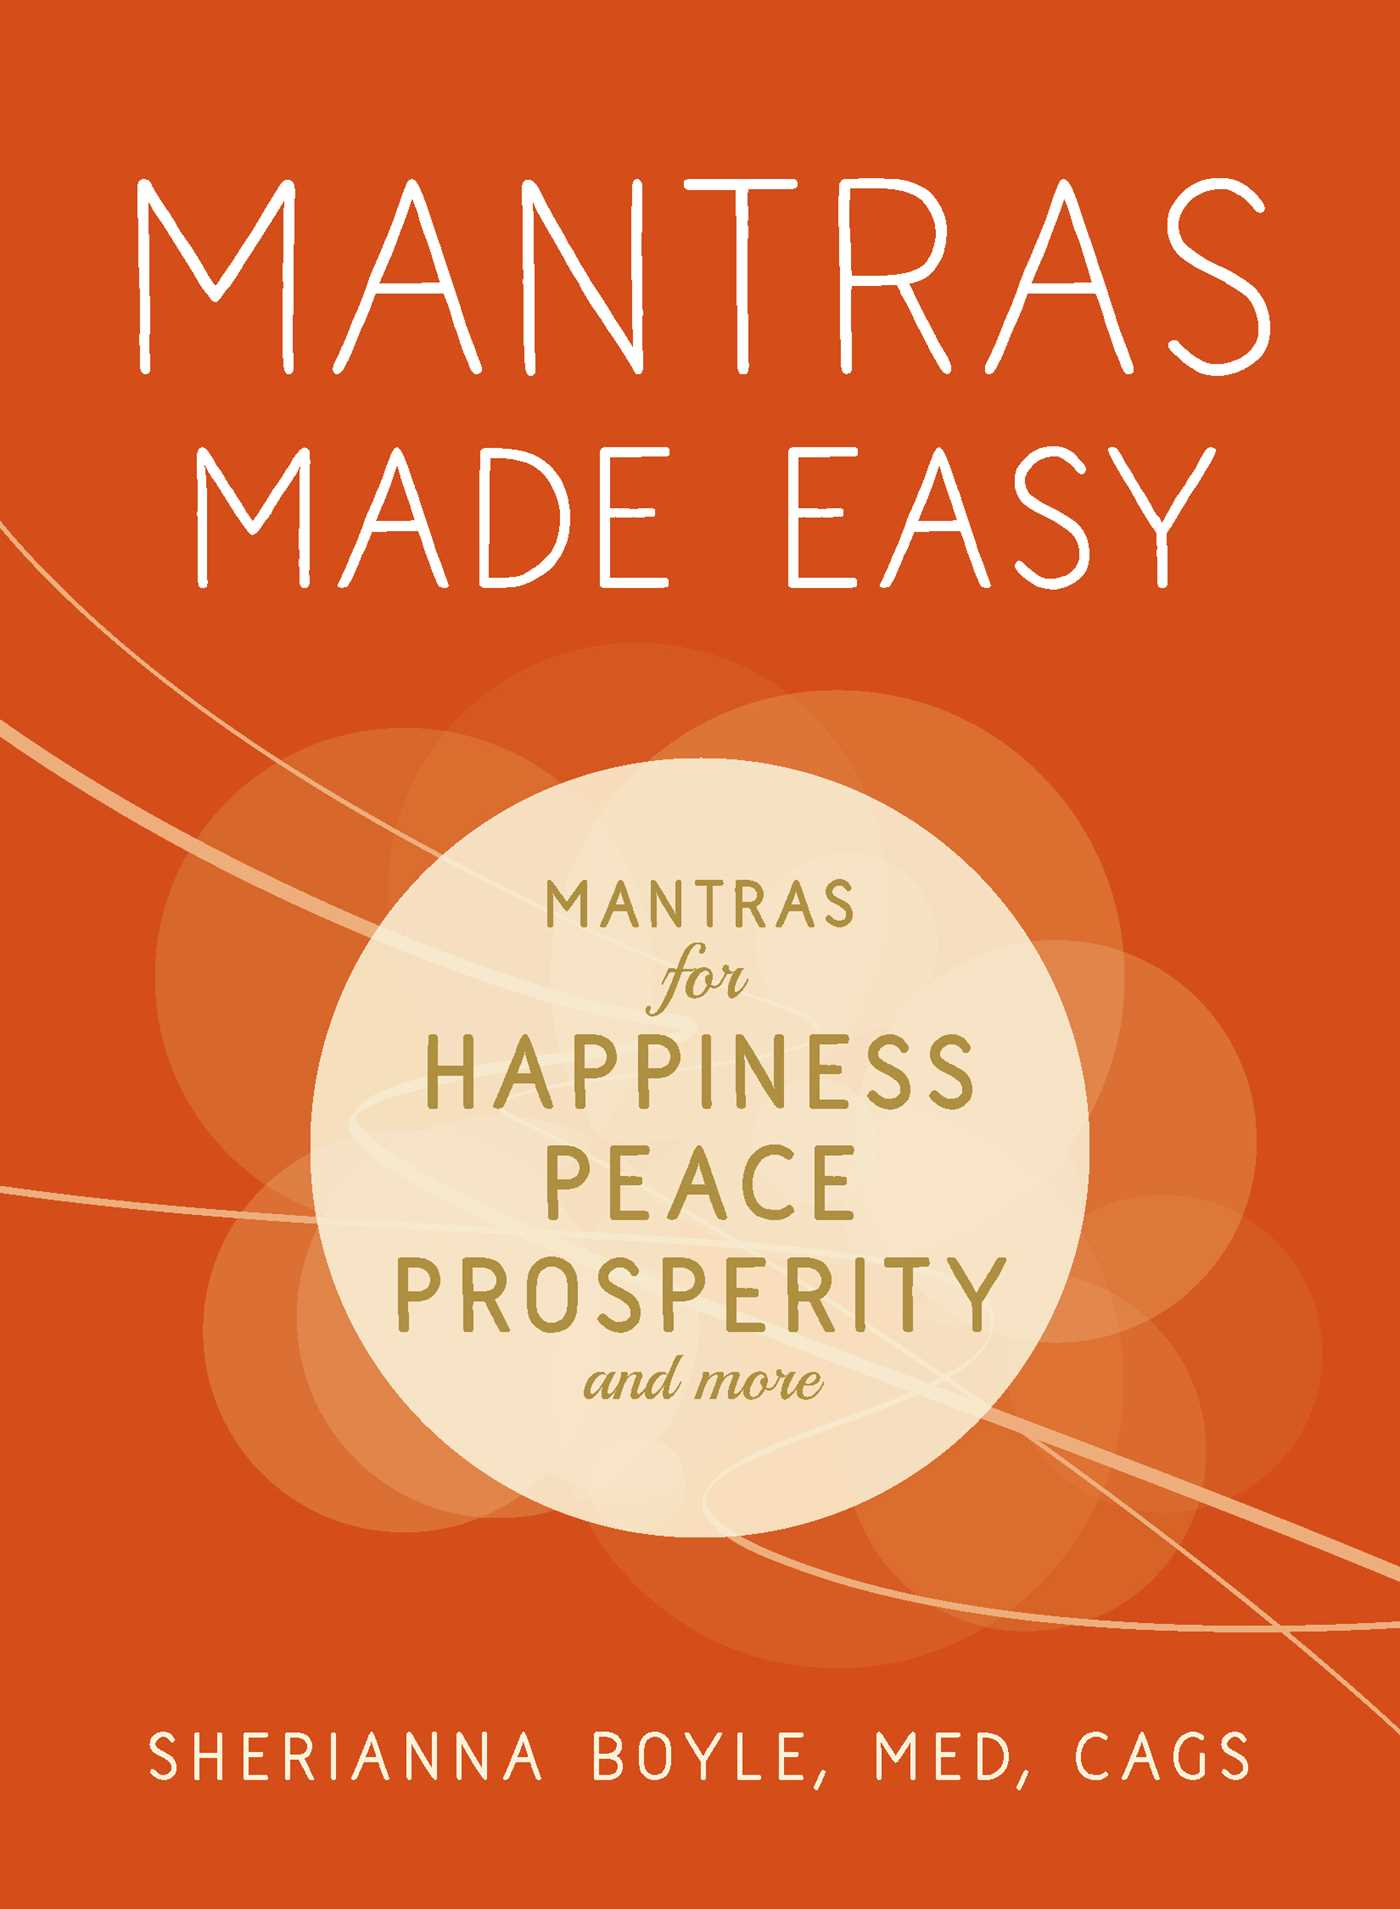 How to read mantras